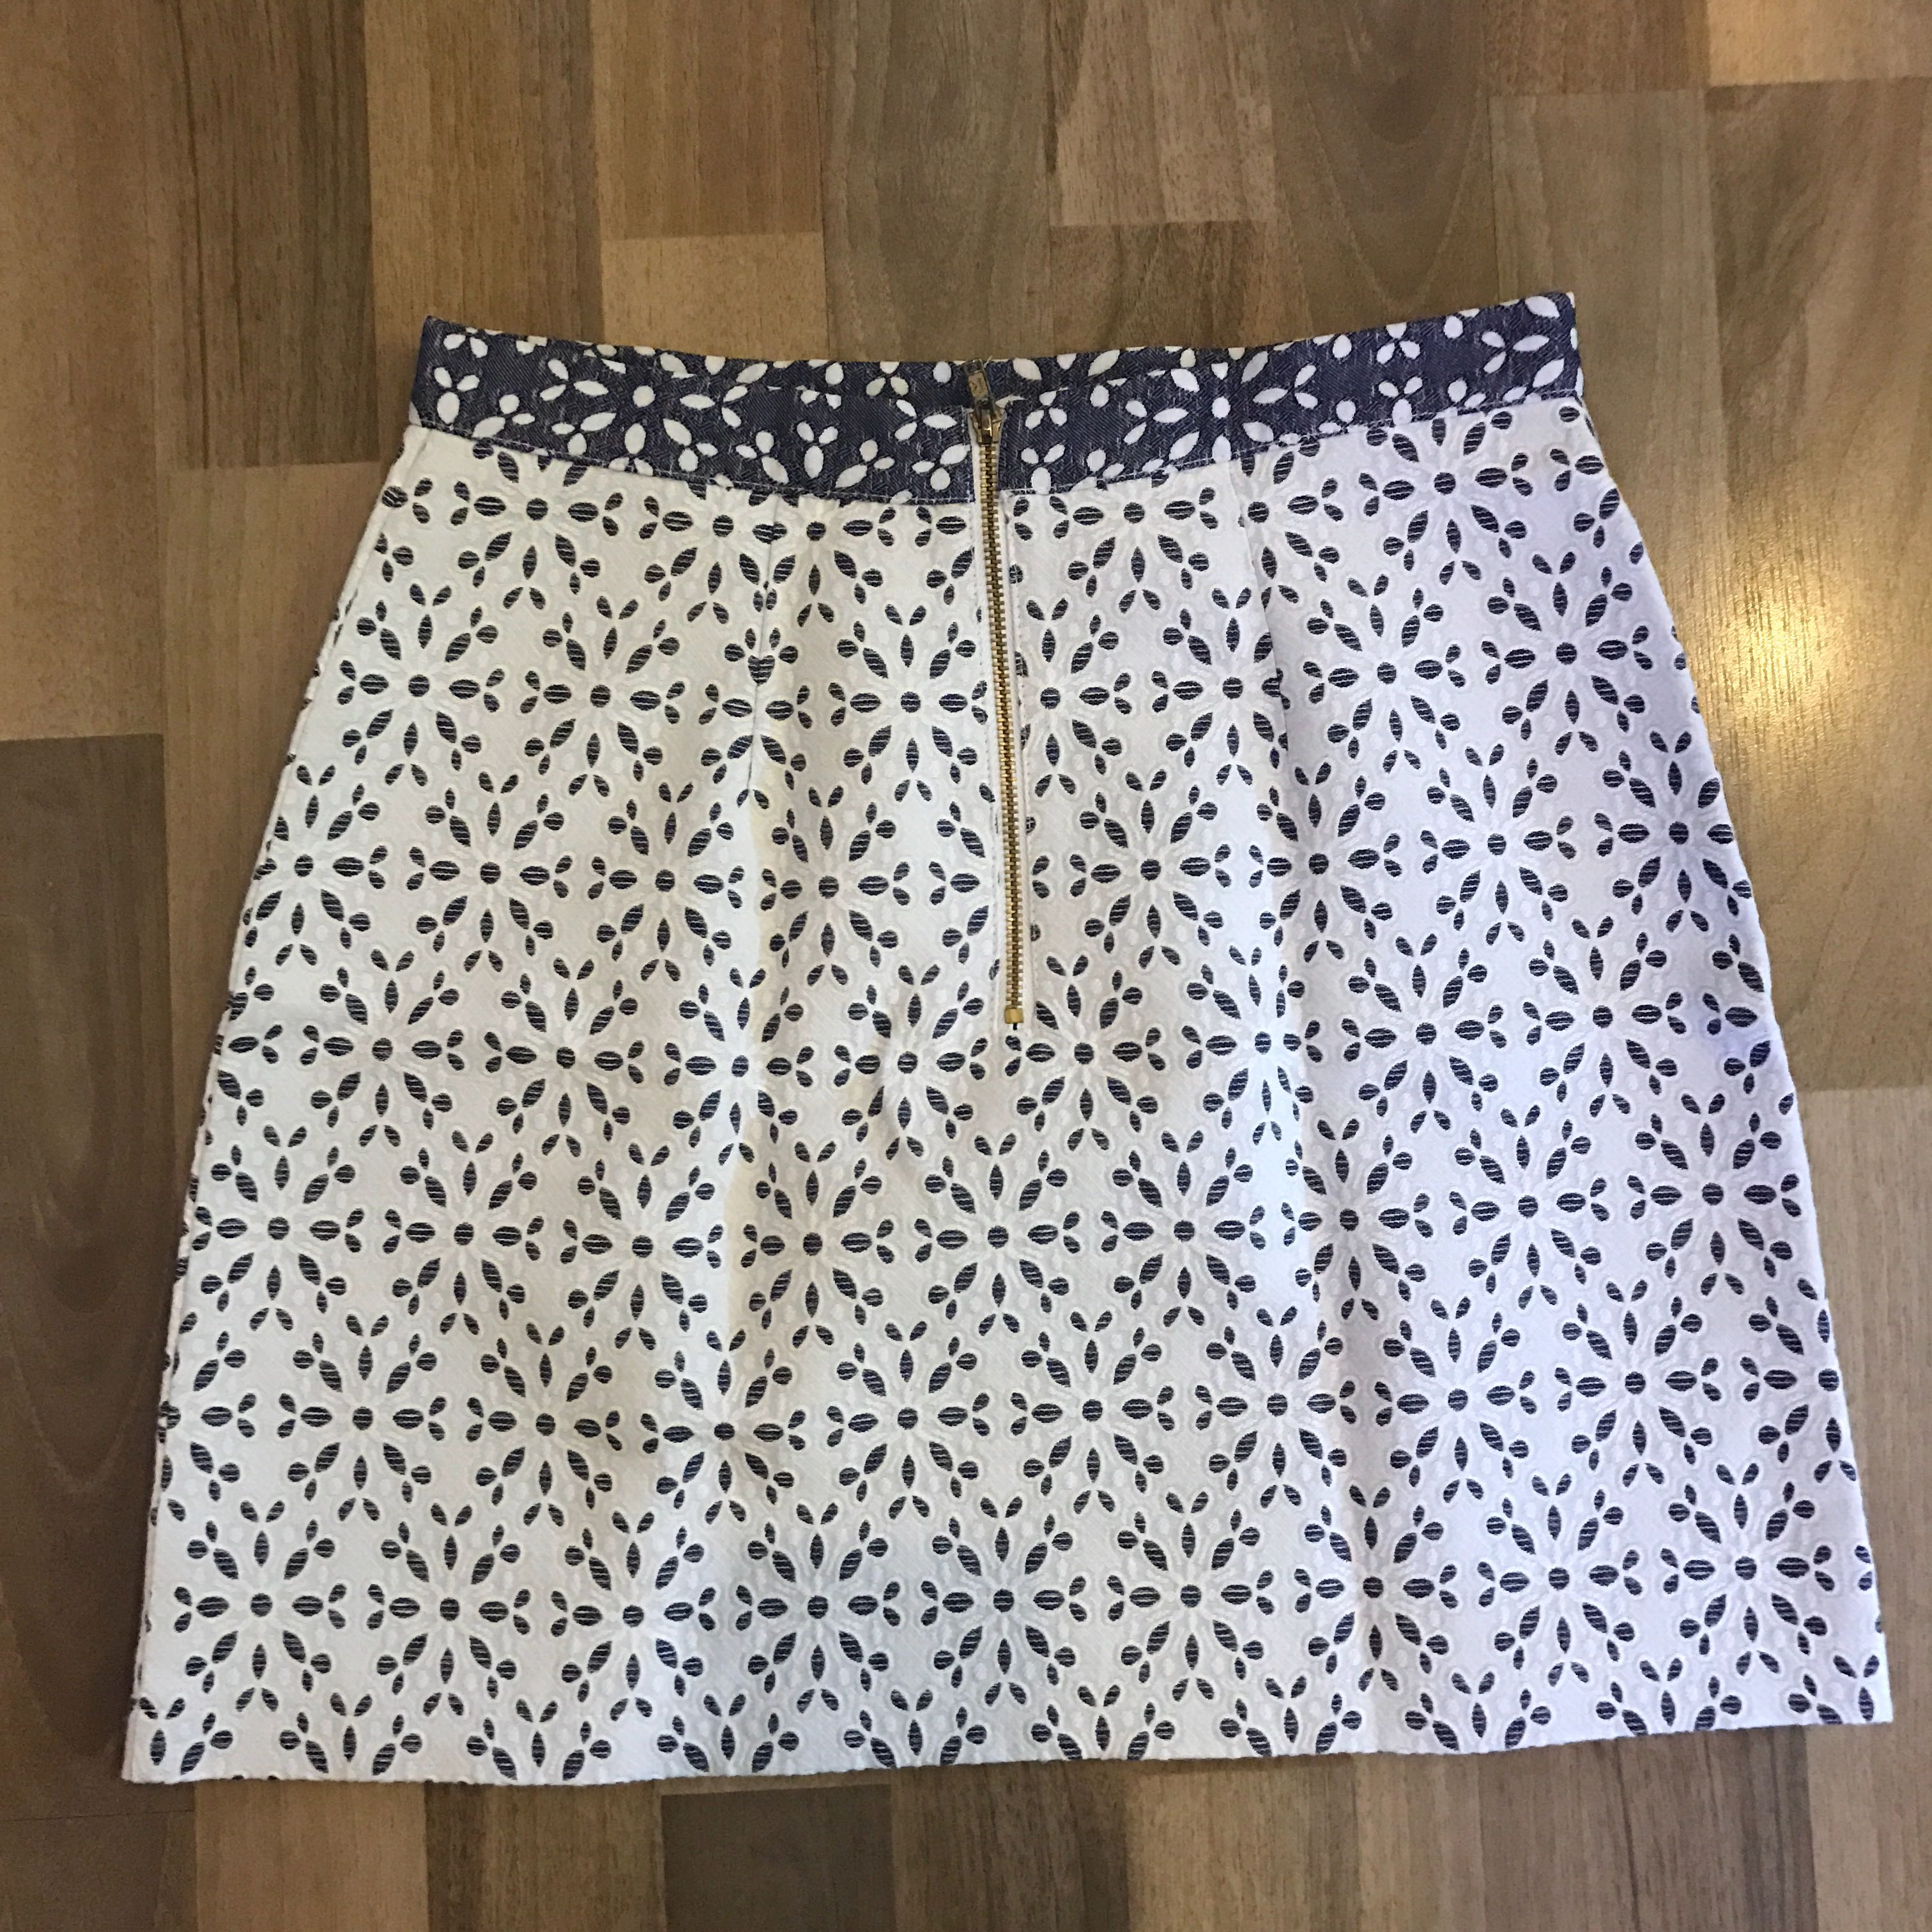 8f7be43abd Topshop floral textured skirt, Women's Fashion, Clothes, Dresses ...